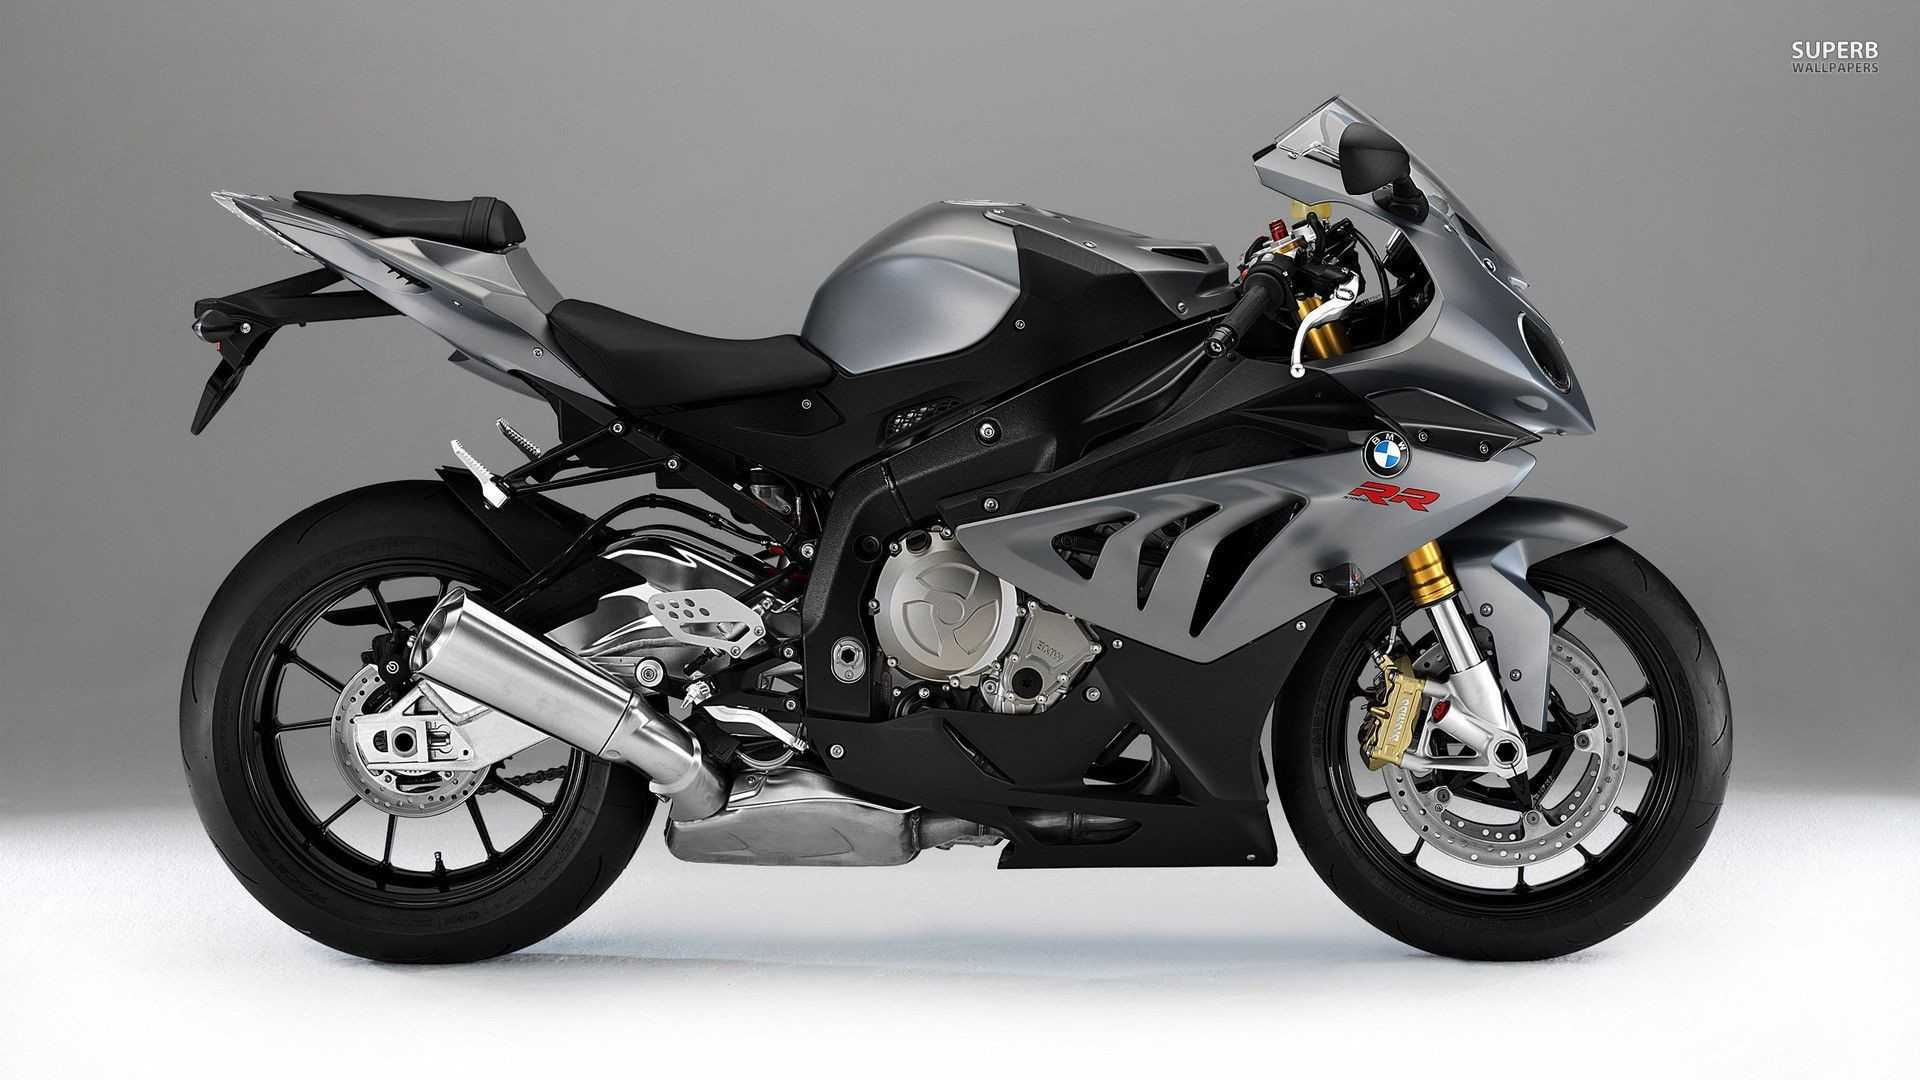 New BMW S RR Exotic Bike Wallpapers of Diesel Station